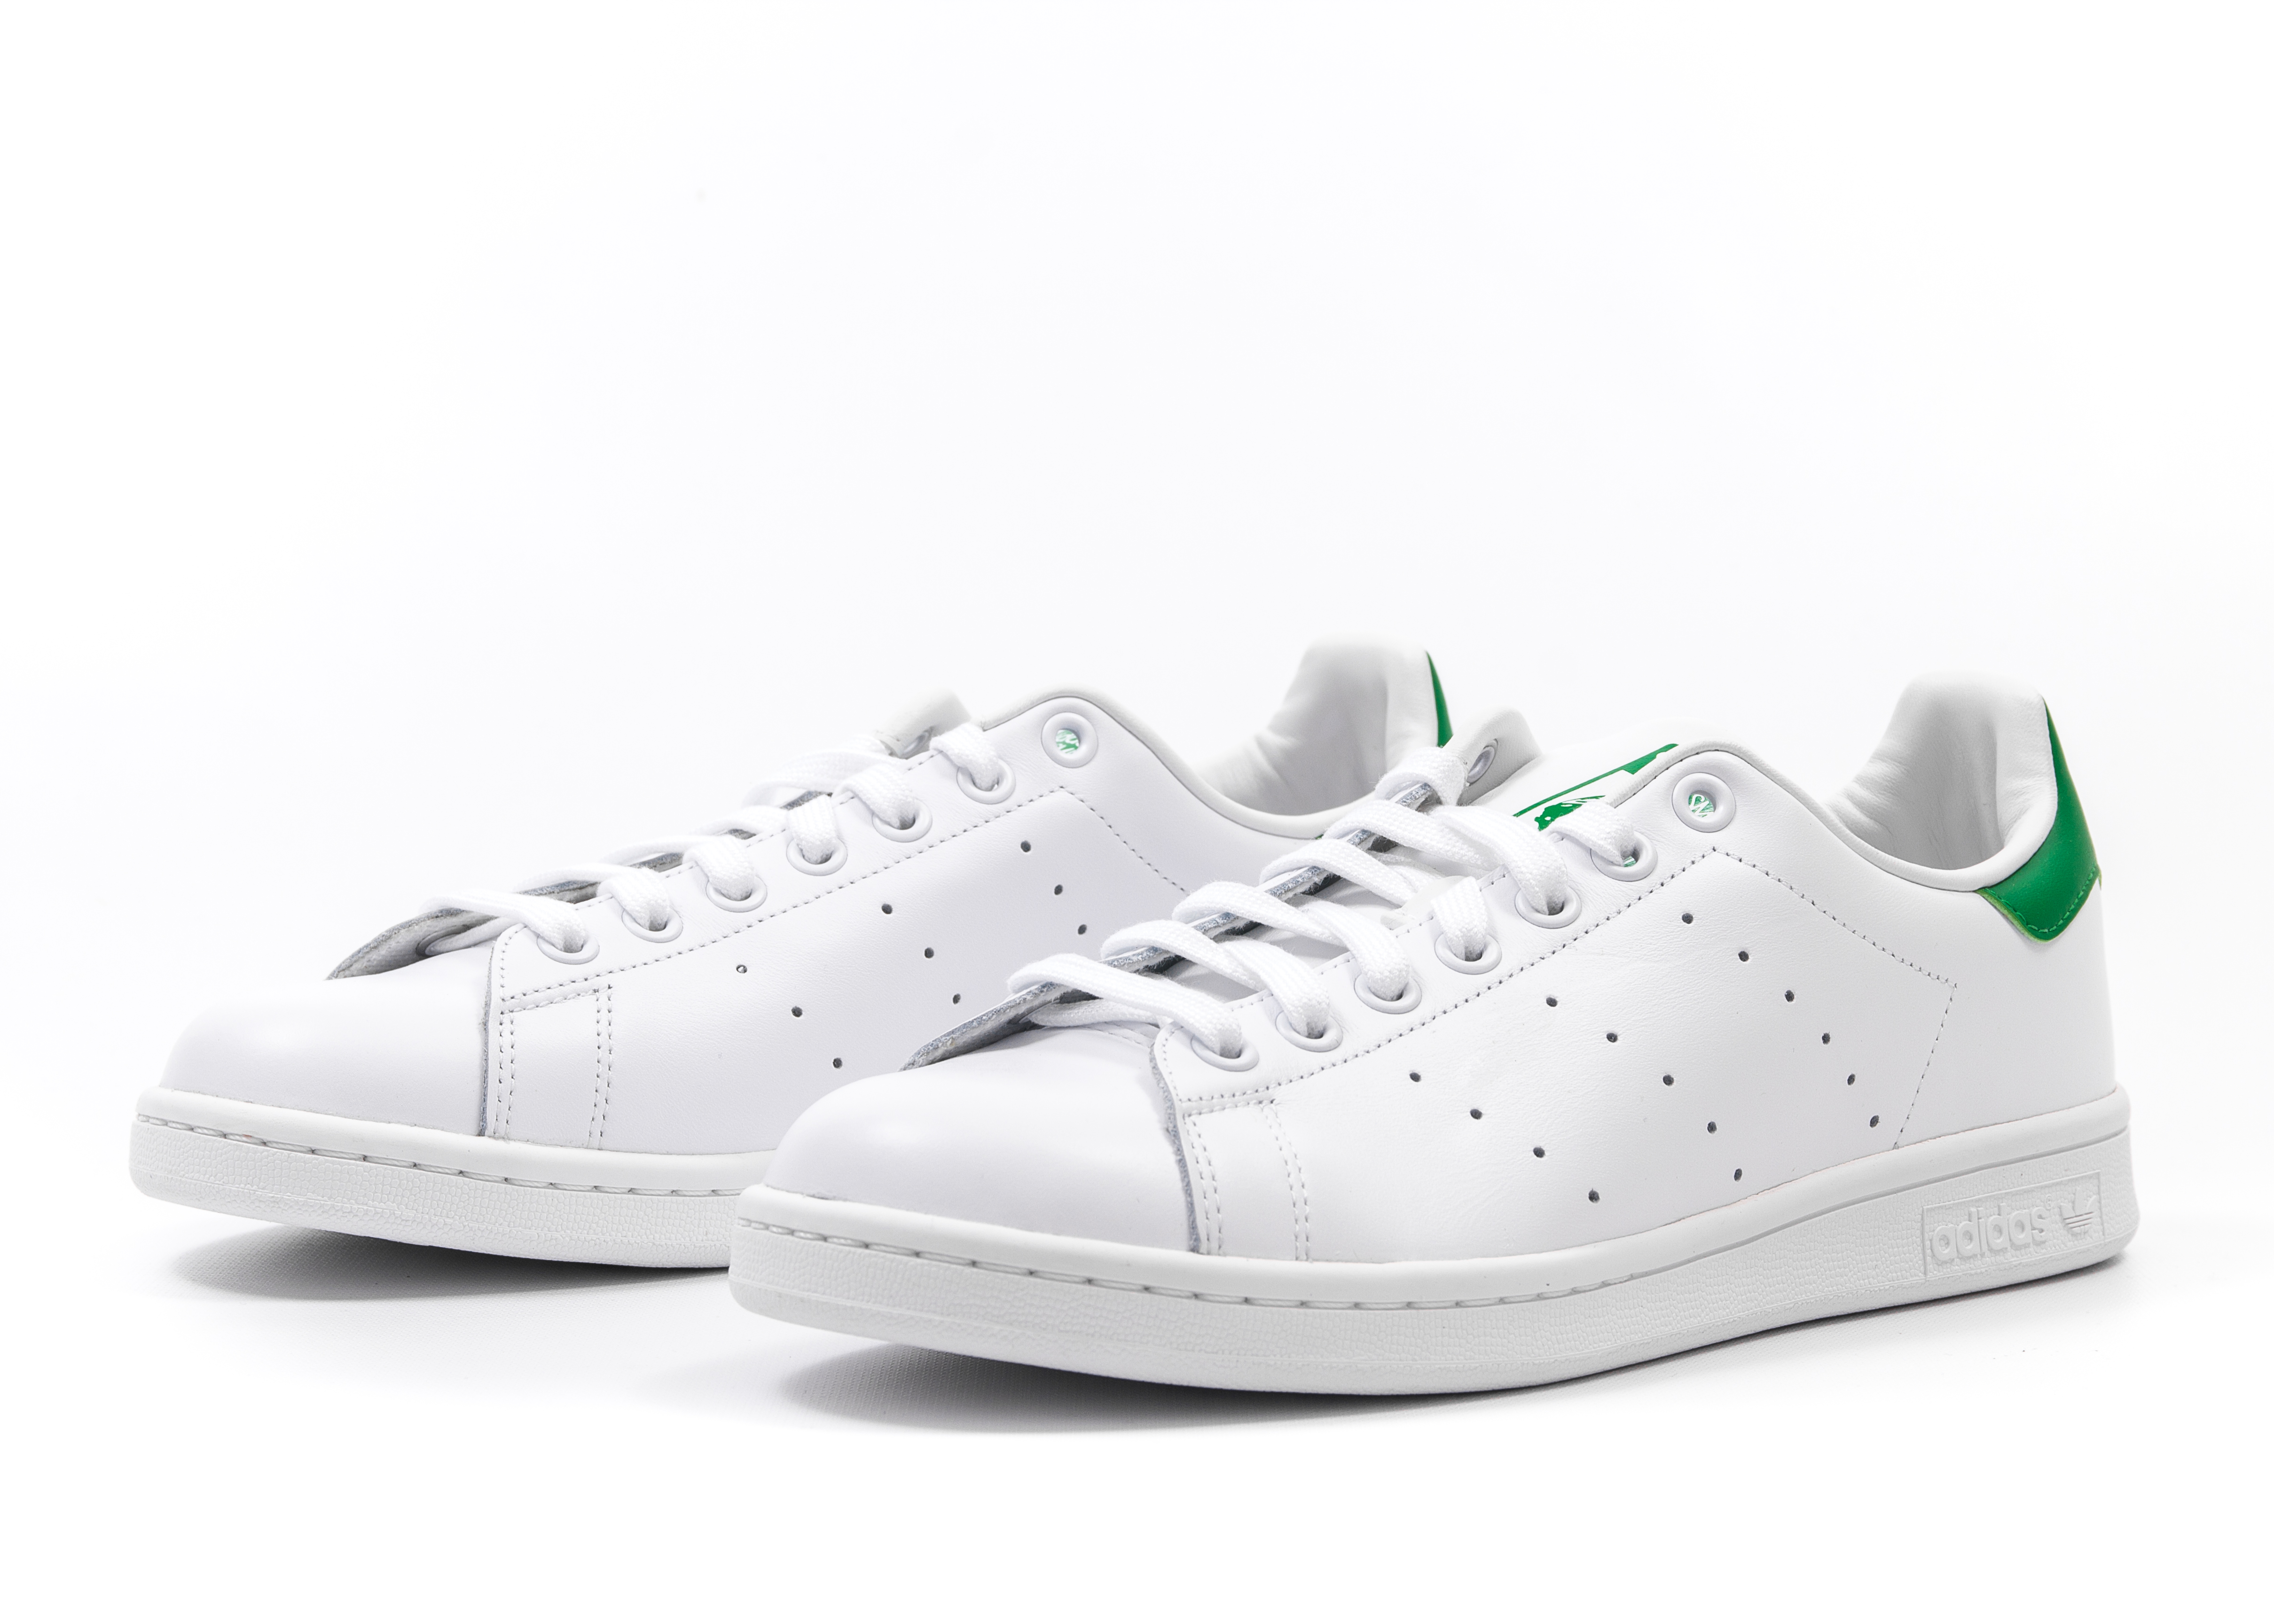 adidas originals stan smith packer shoes packer shoes. Black Bedroom Furniture Sets. Home Design Ideas